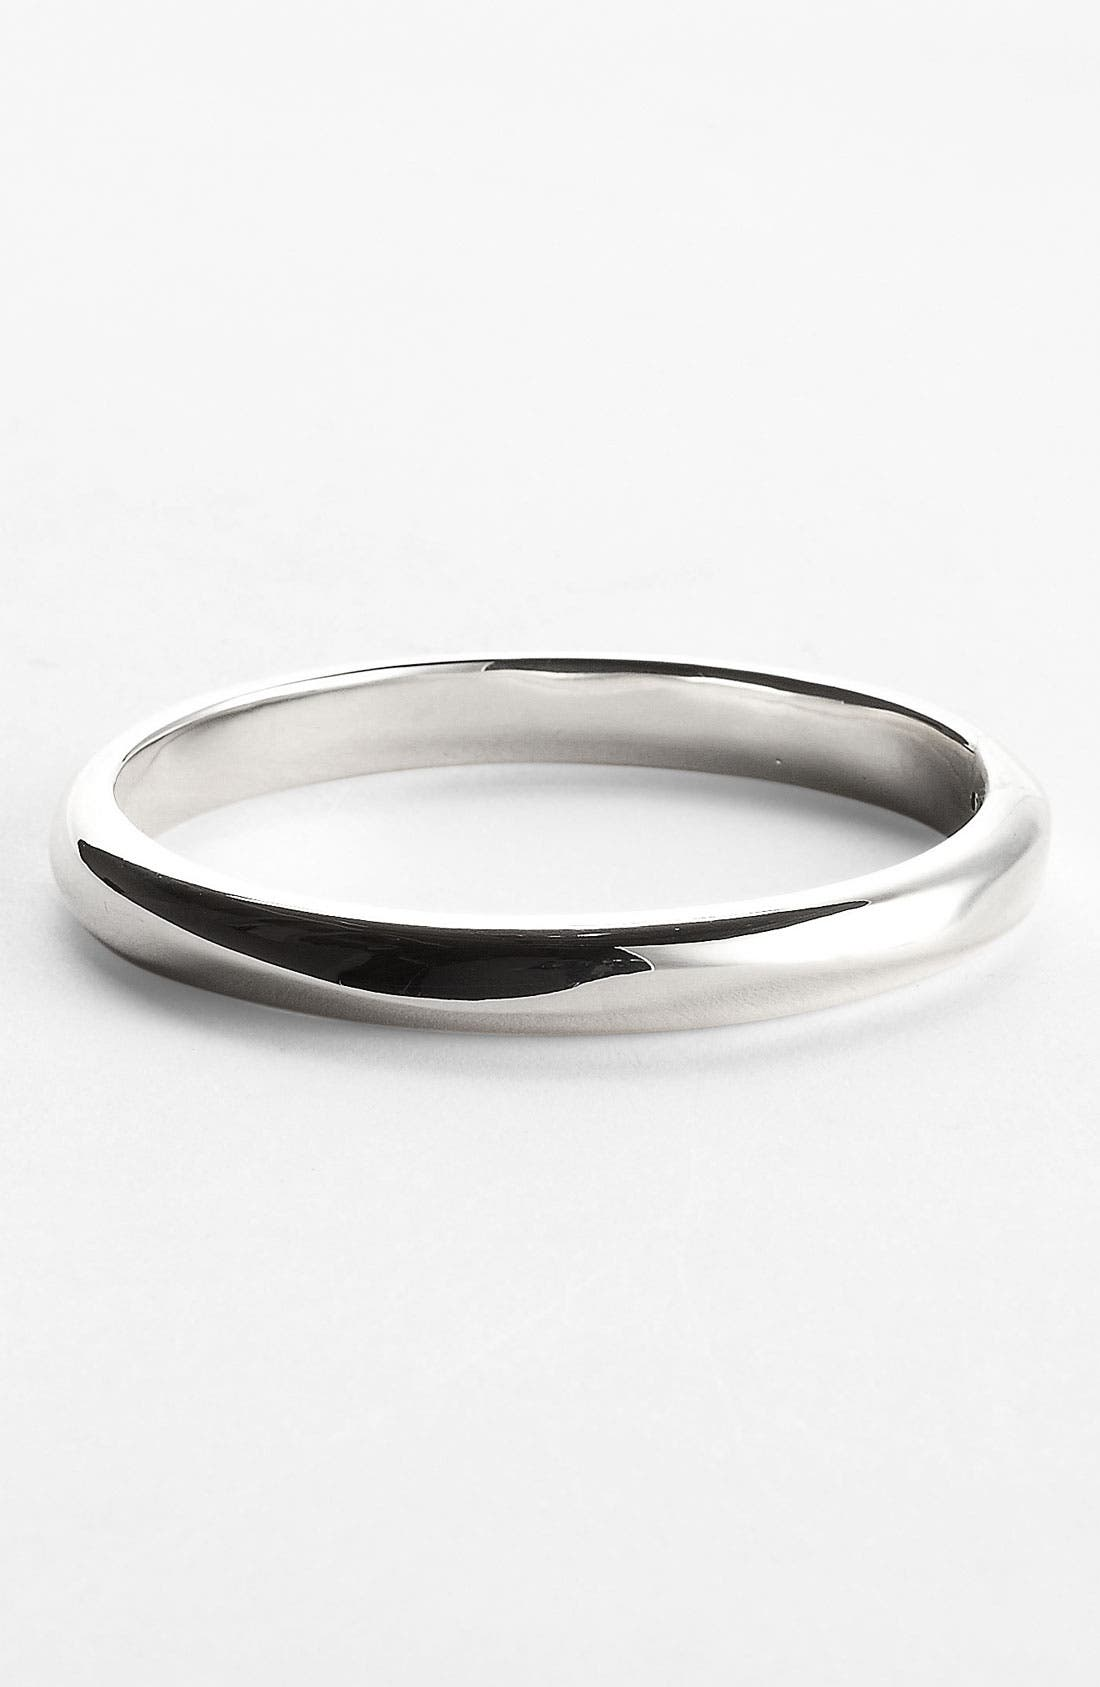 Main Image - Simon Sebbag Twist Edged Bangle